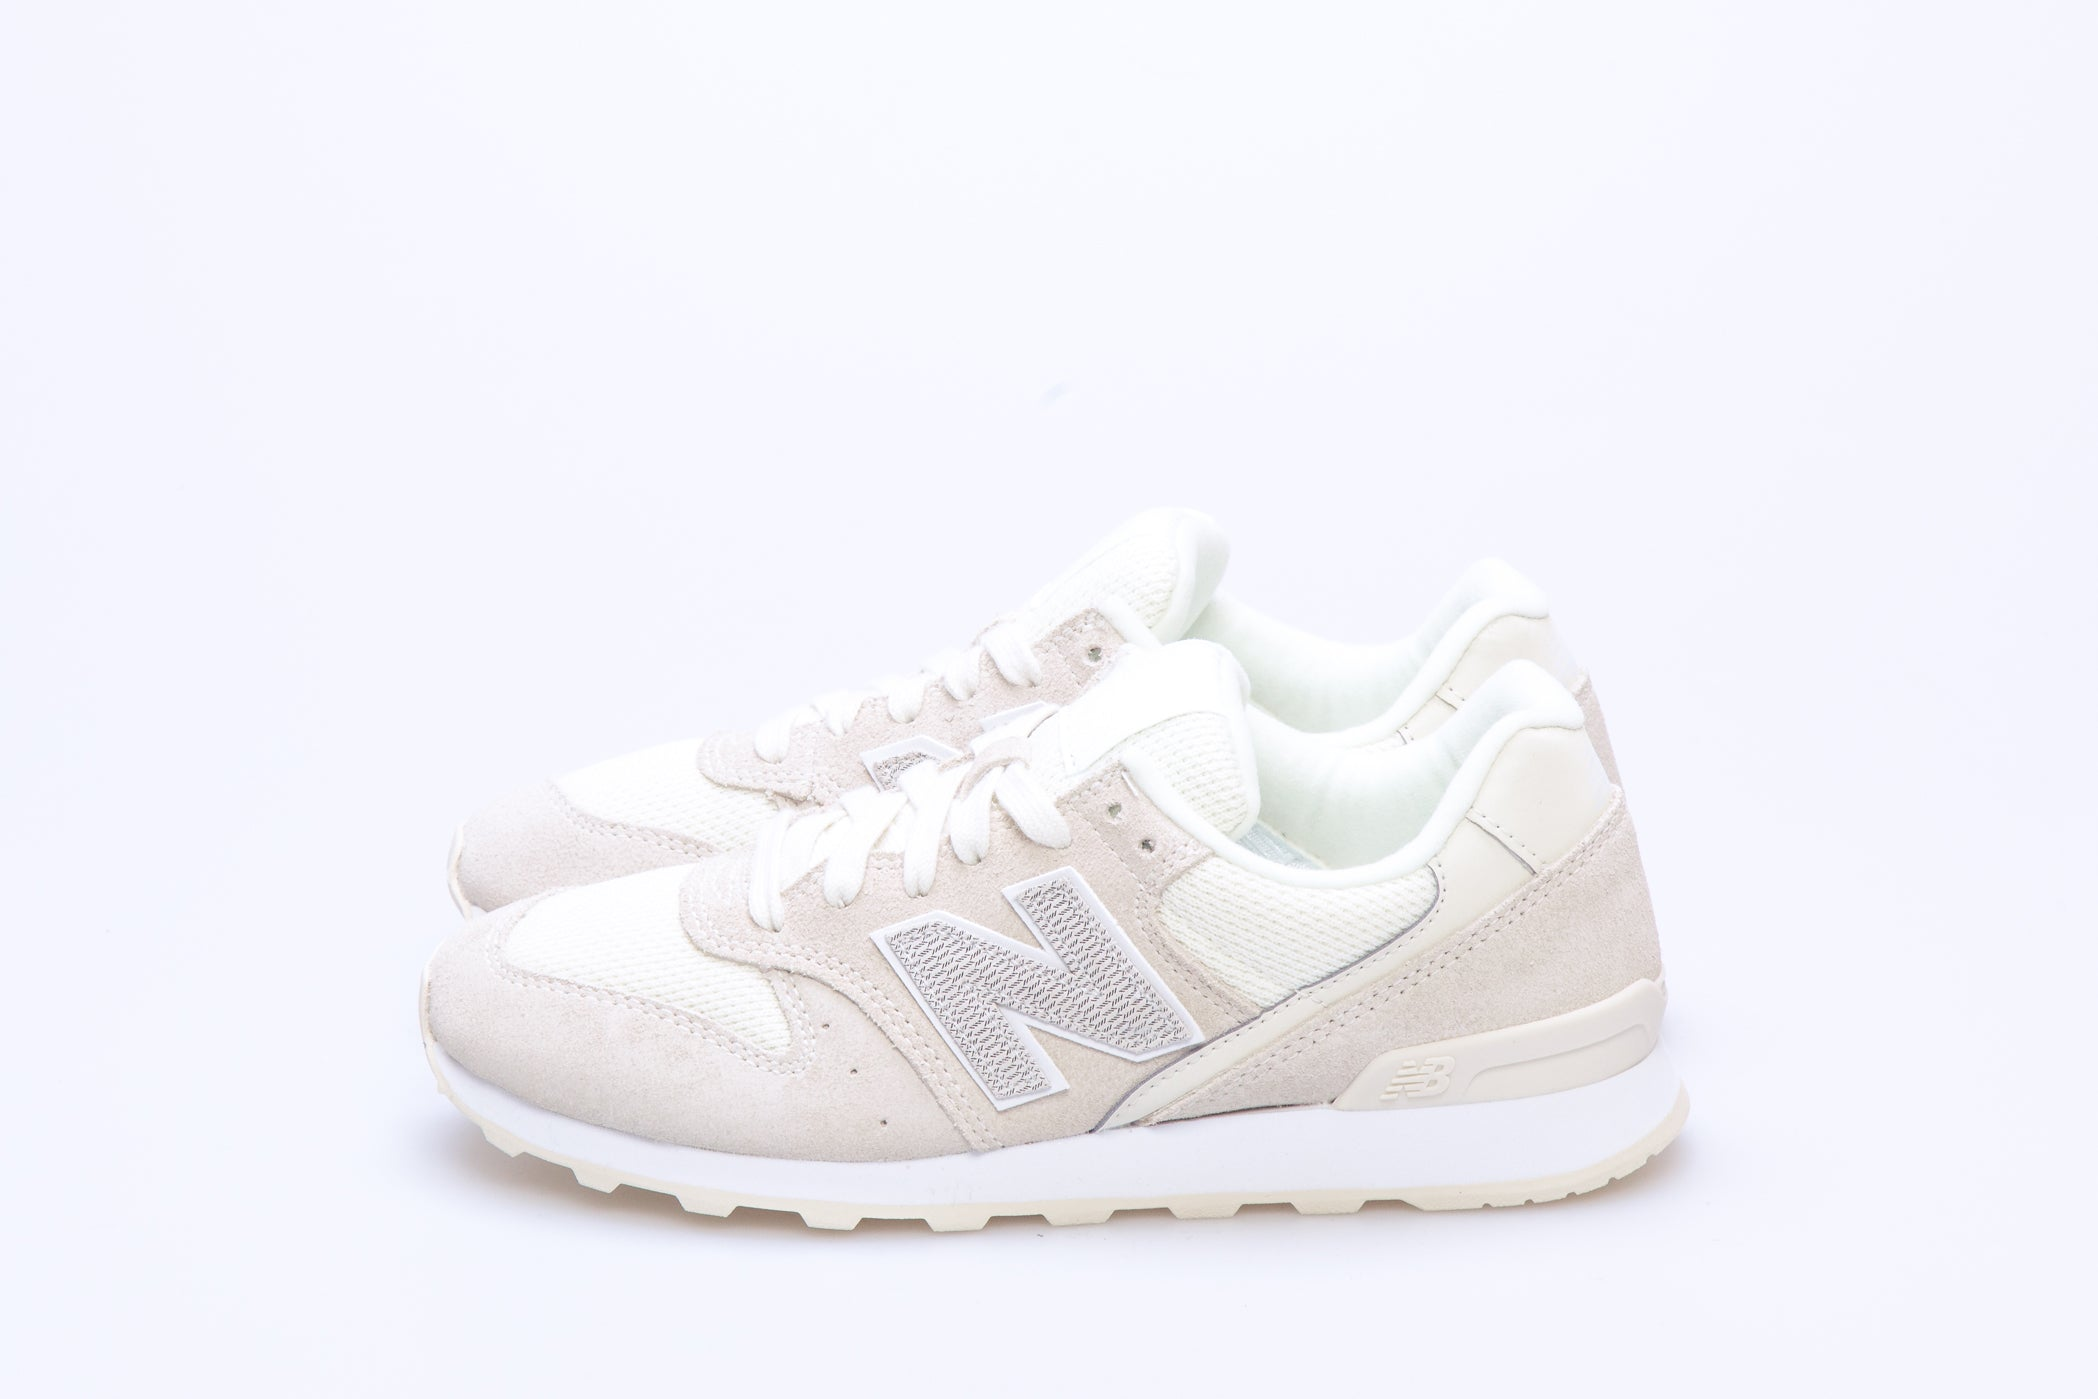 New Balance New Balance WR 996 LCB - Edelvice Sneaker Muenchen